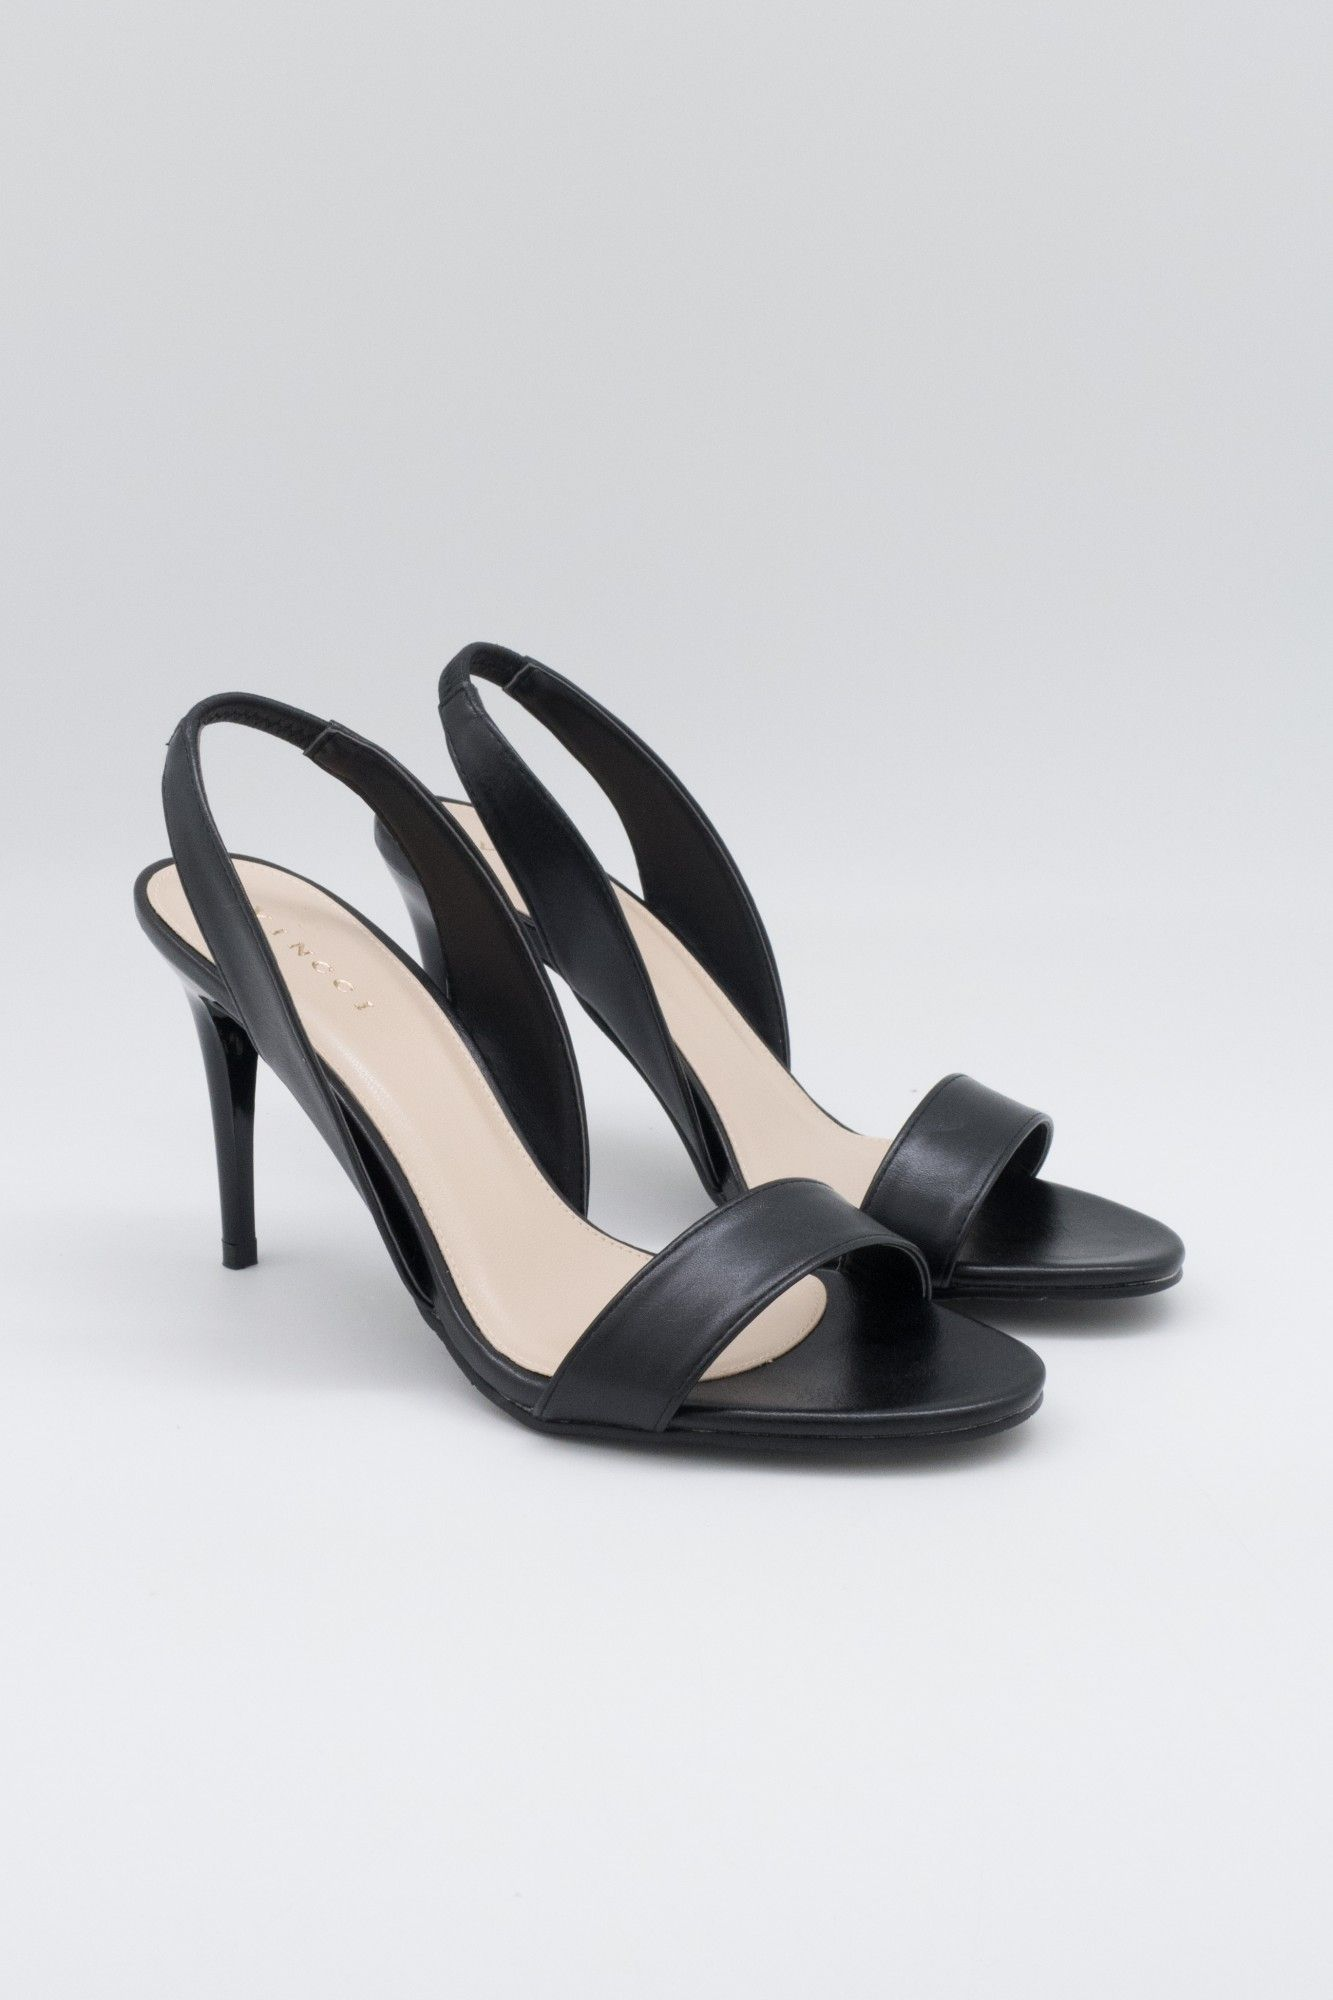 dd21fb9da4294 Vincci Party Shoes Heel - Shoes - Women. Find this Pin and more on Shoes and  Sandals ...